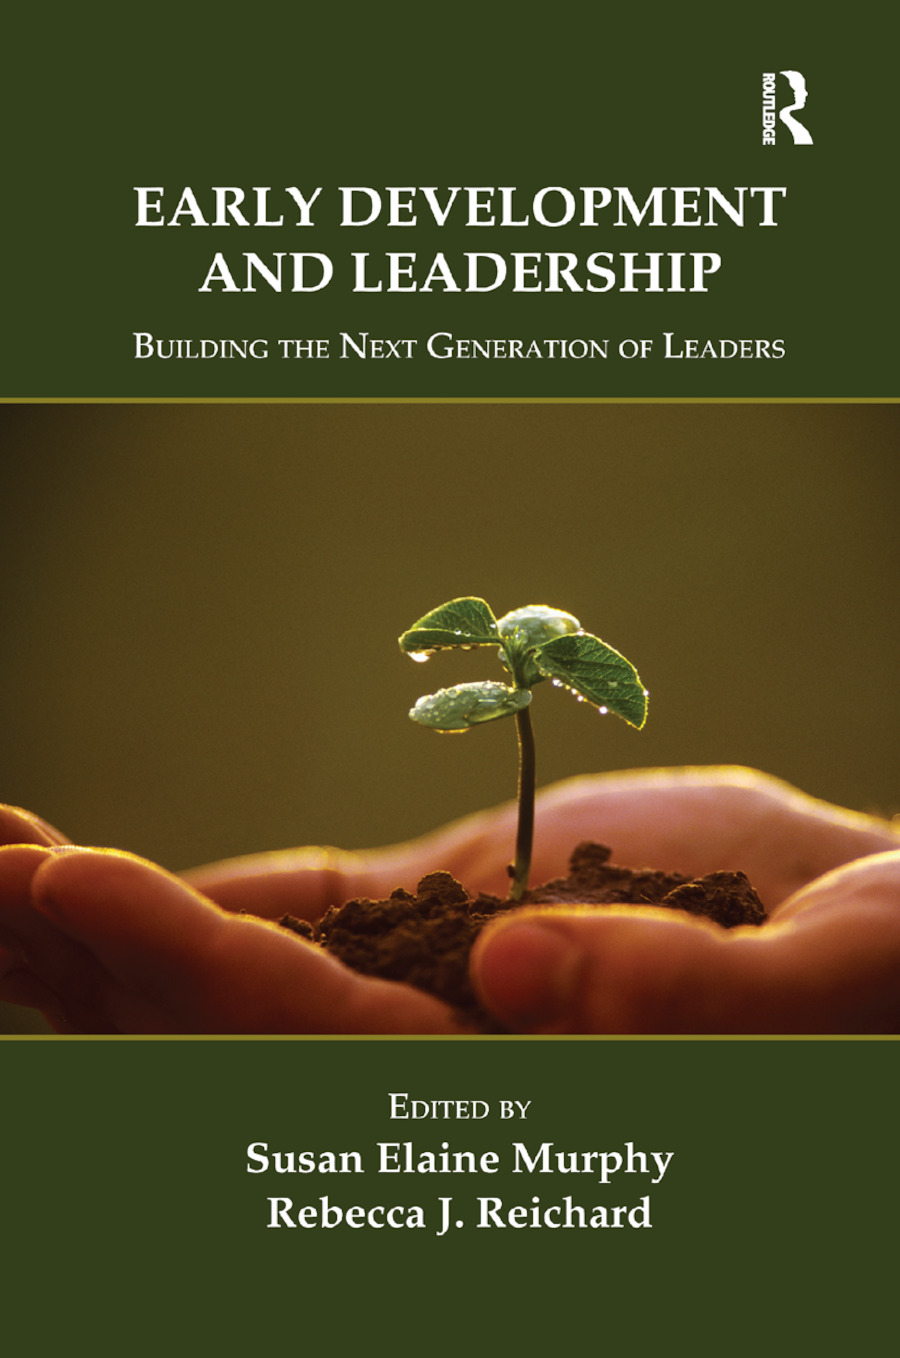 Early Development and Leadership: Building the Next Generation of Leaders book cover